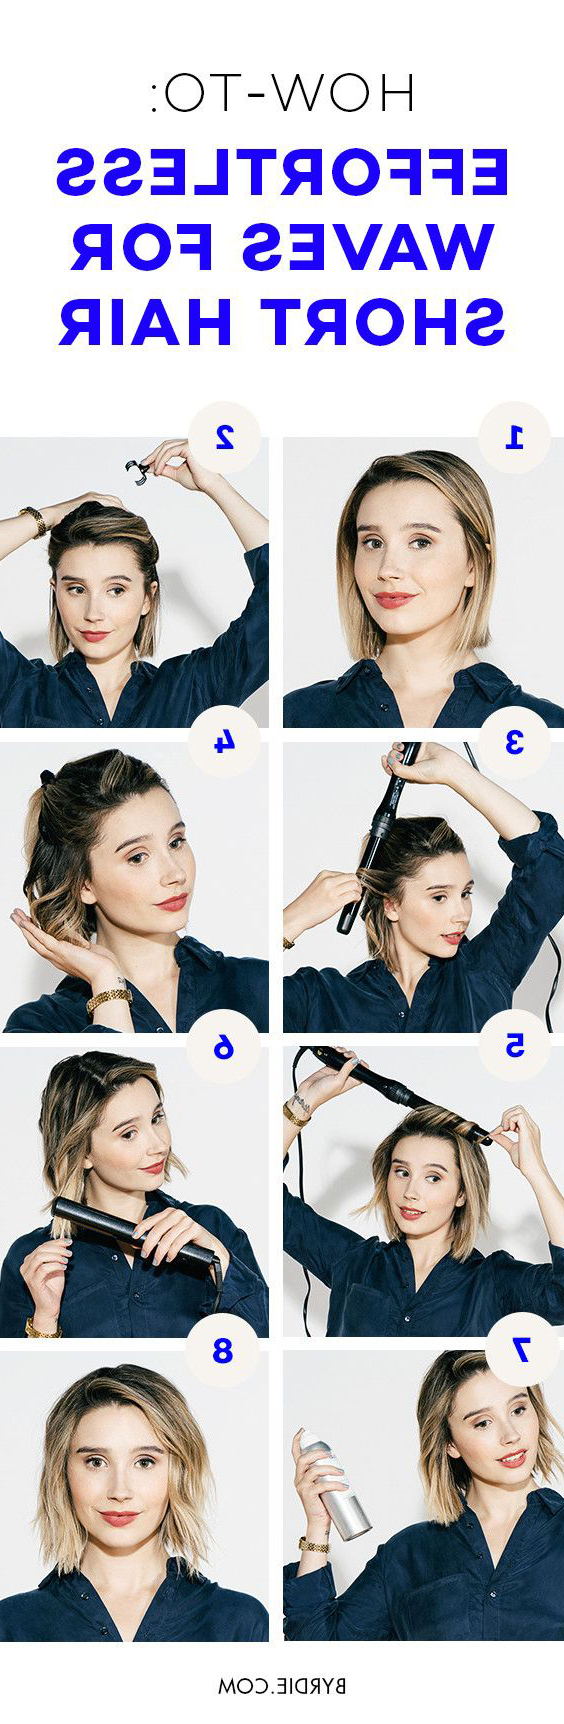 18 Gorgeous Prom Hairstyles For Short Hair – Gurl | Gurl Pertaining To Hairstyles For Short Hair For Graduation (View 4 of 25)